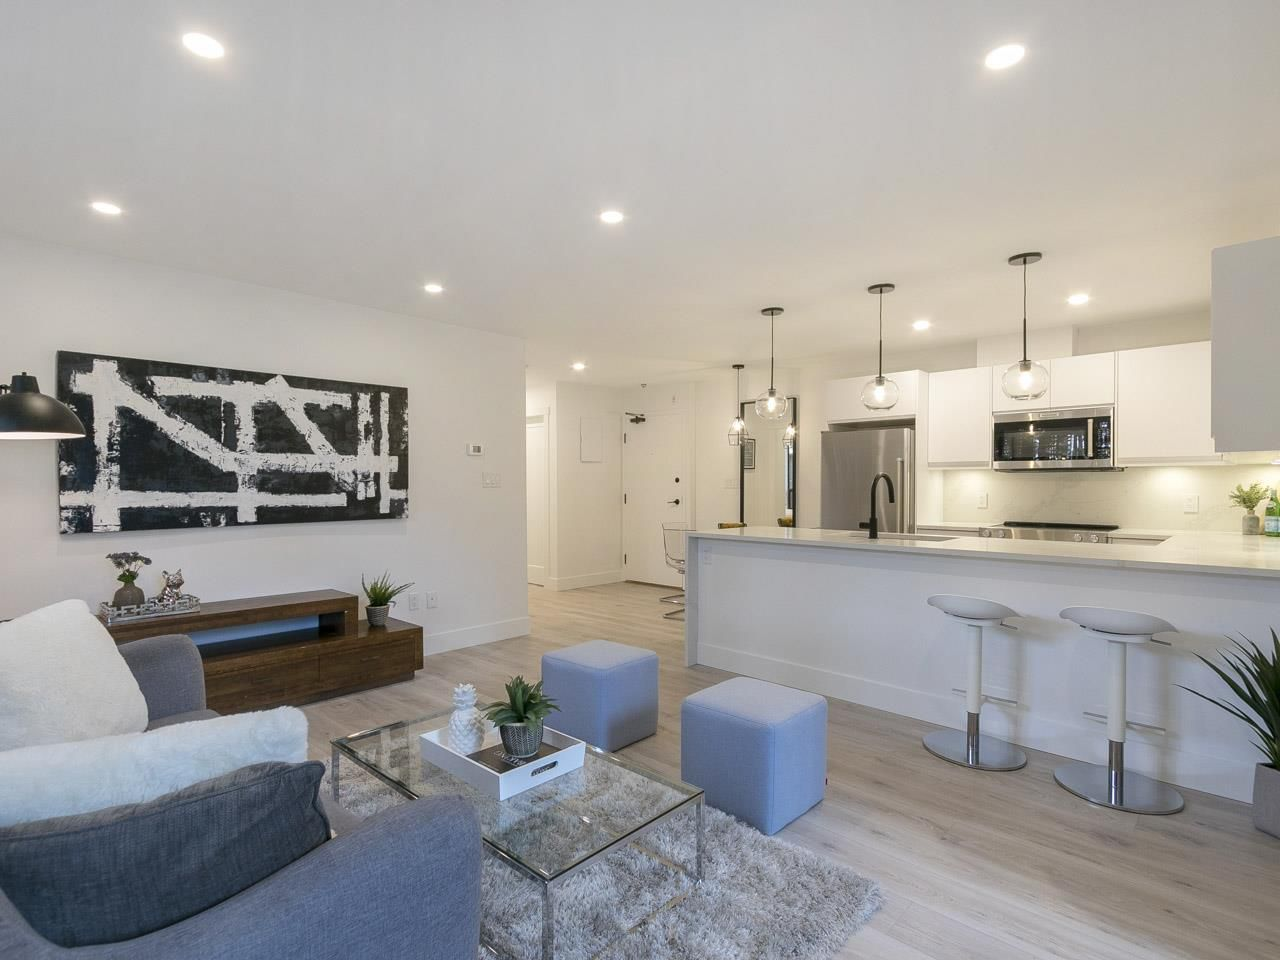 """Main Photo: 205 2320 W 40TH Avenue in Vancouver: Kerrisdale Condo for sale in """"MANOR GARDEN"""" (Vancouver West)  : MLS®# R2269121"""